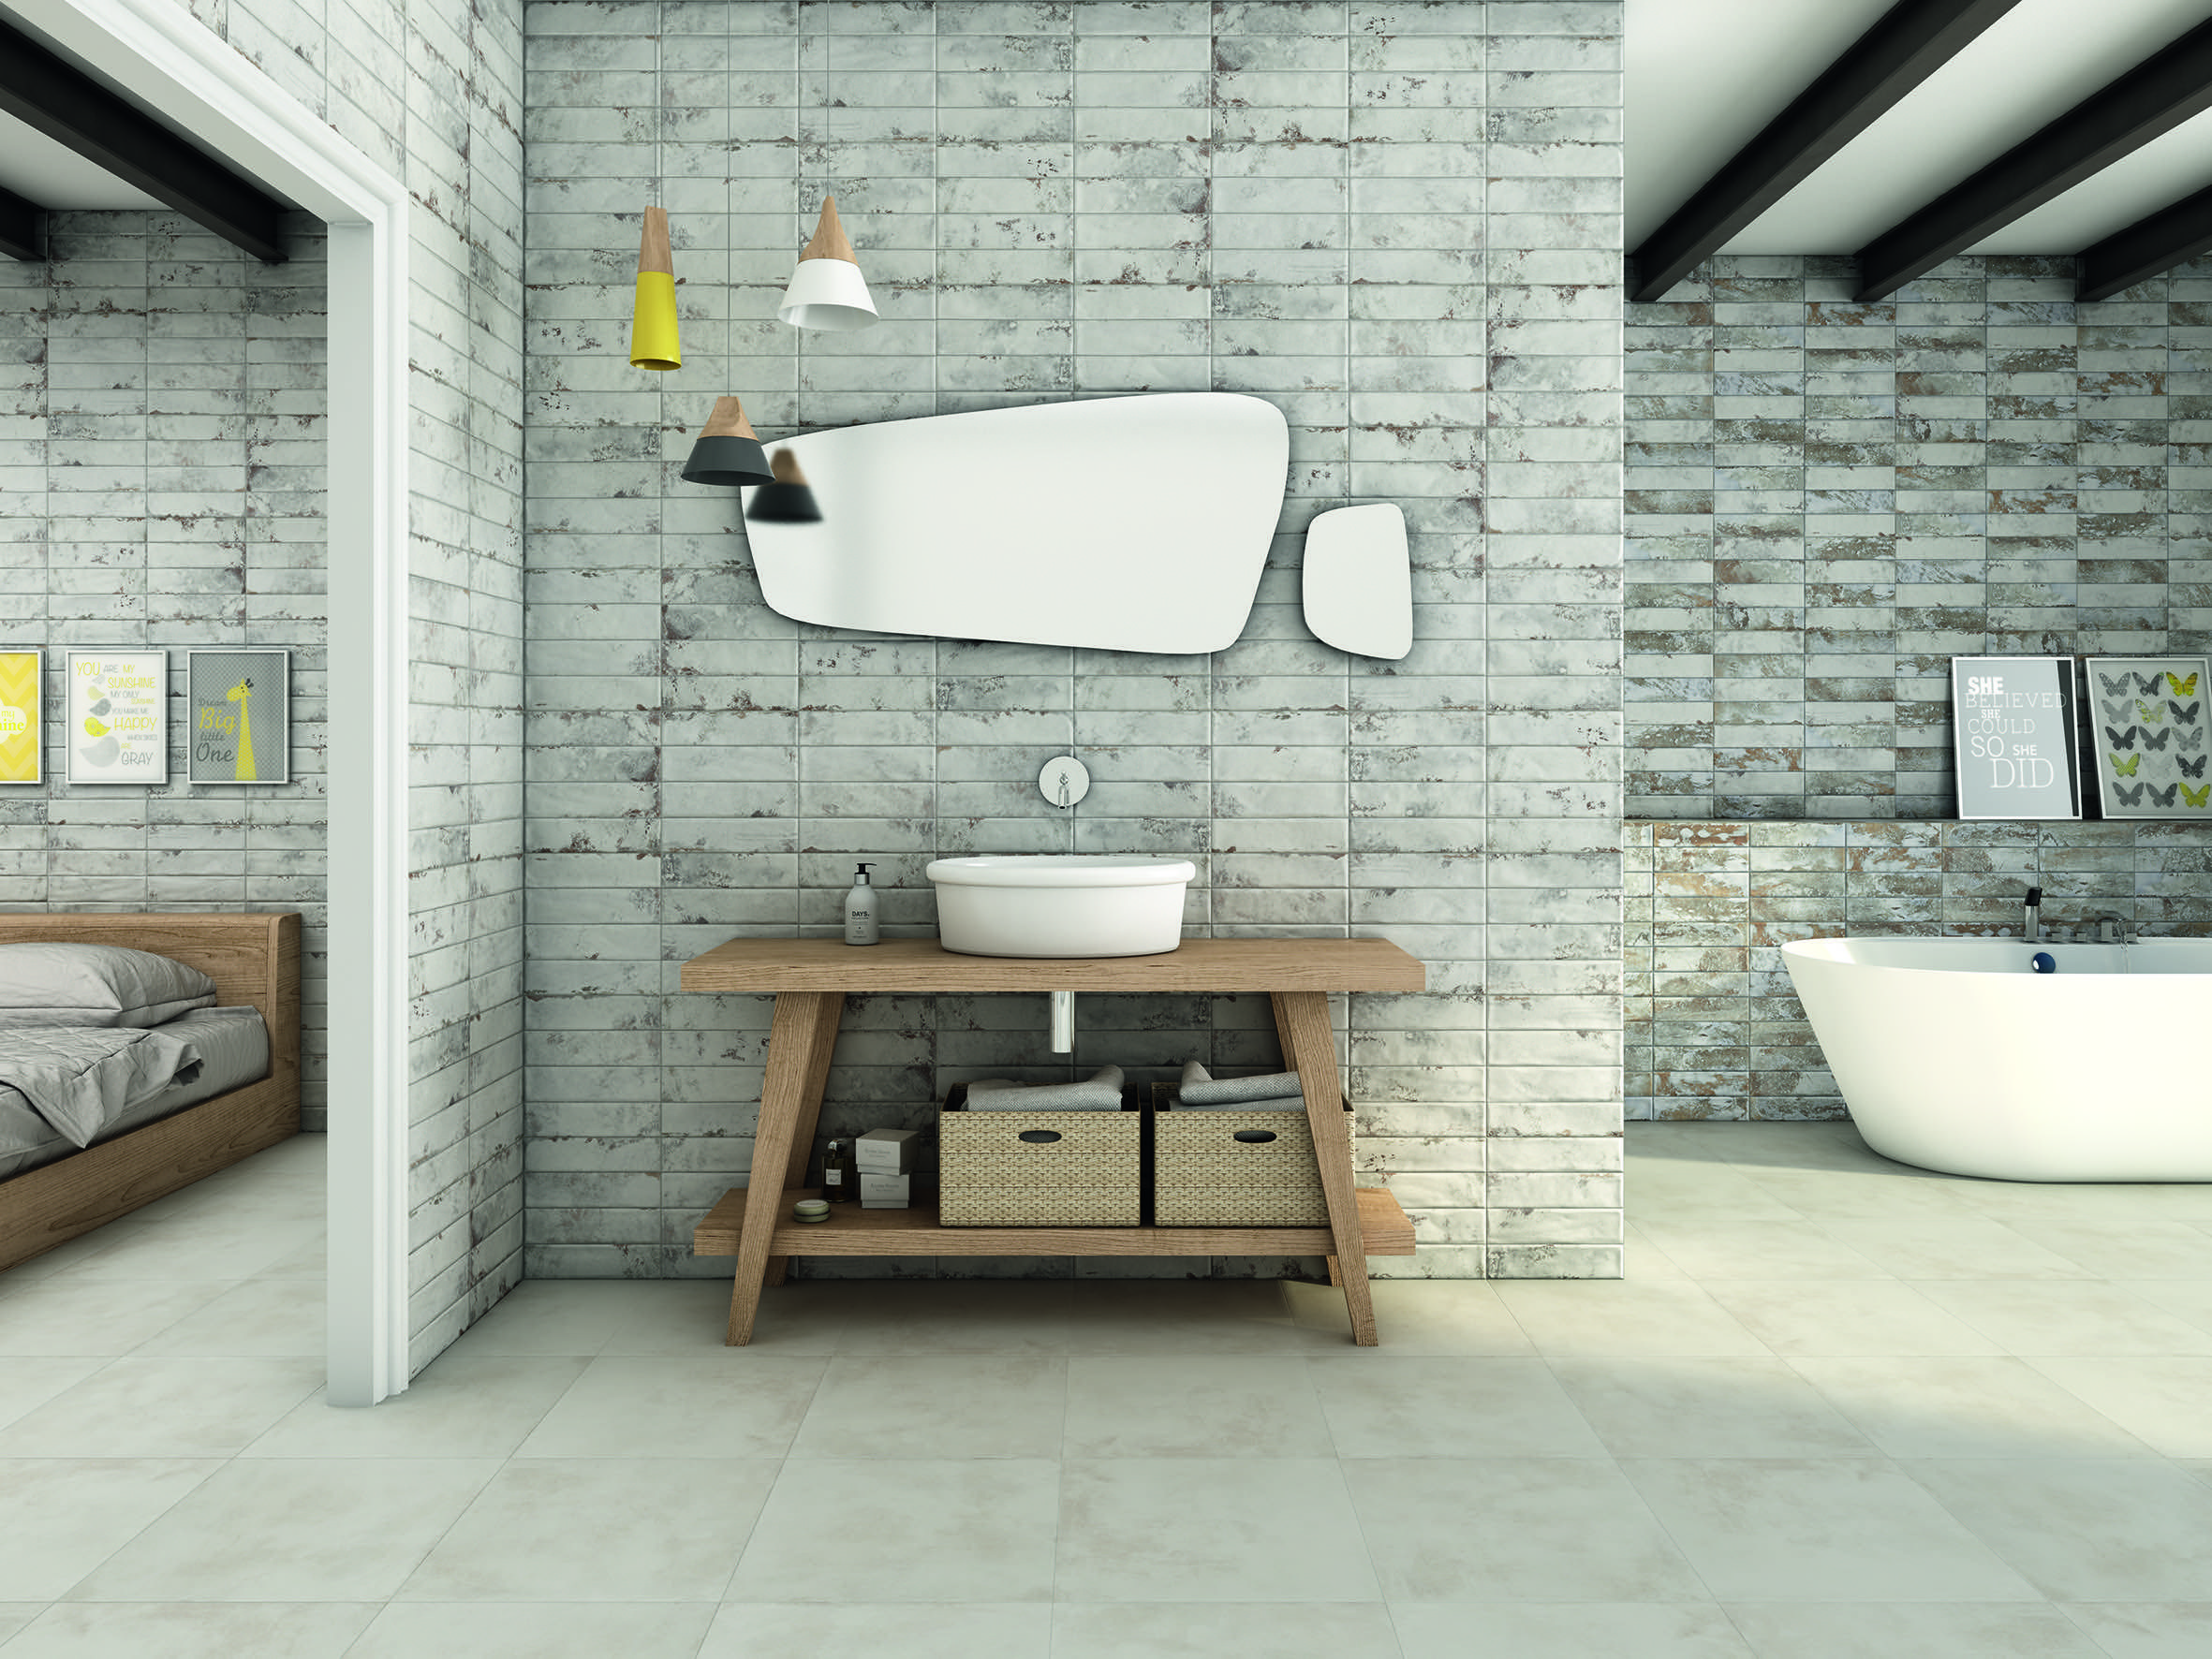 tile of spain manufacturer ceramica gomez presents the mayolica